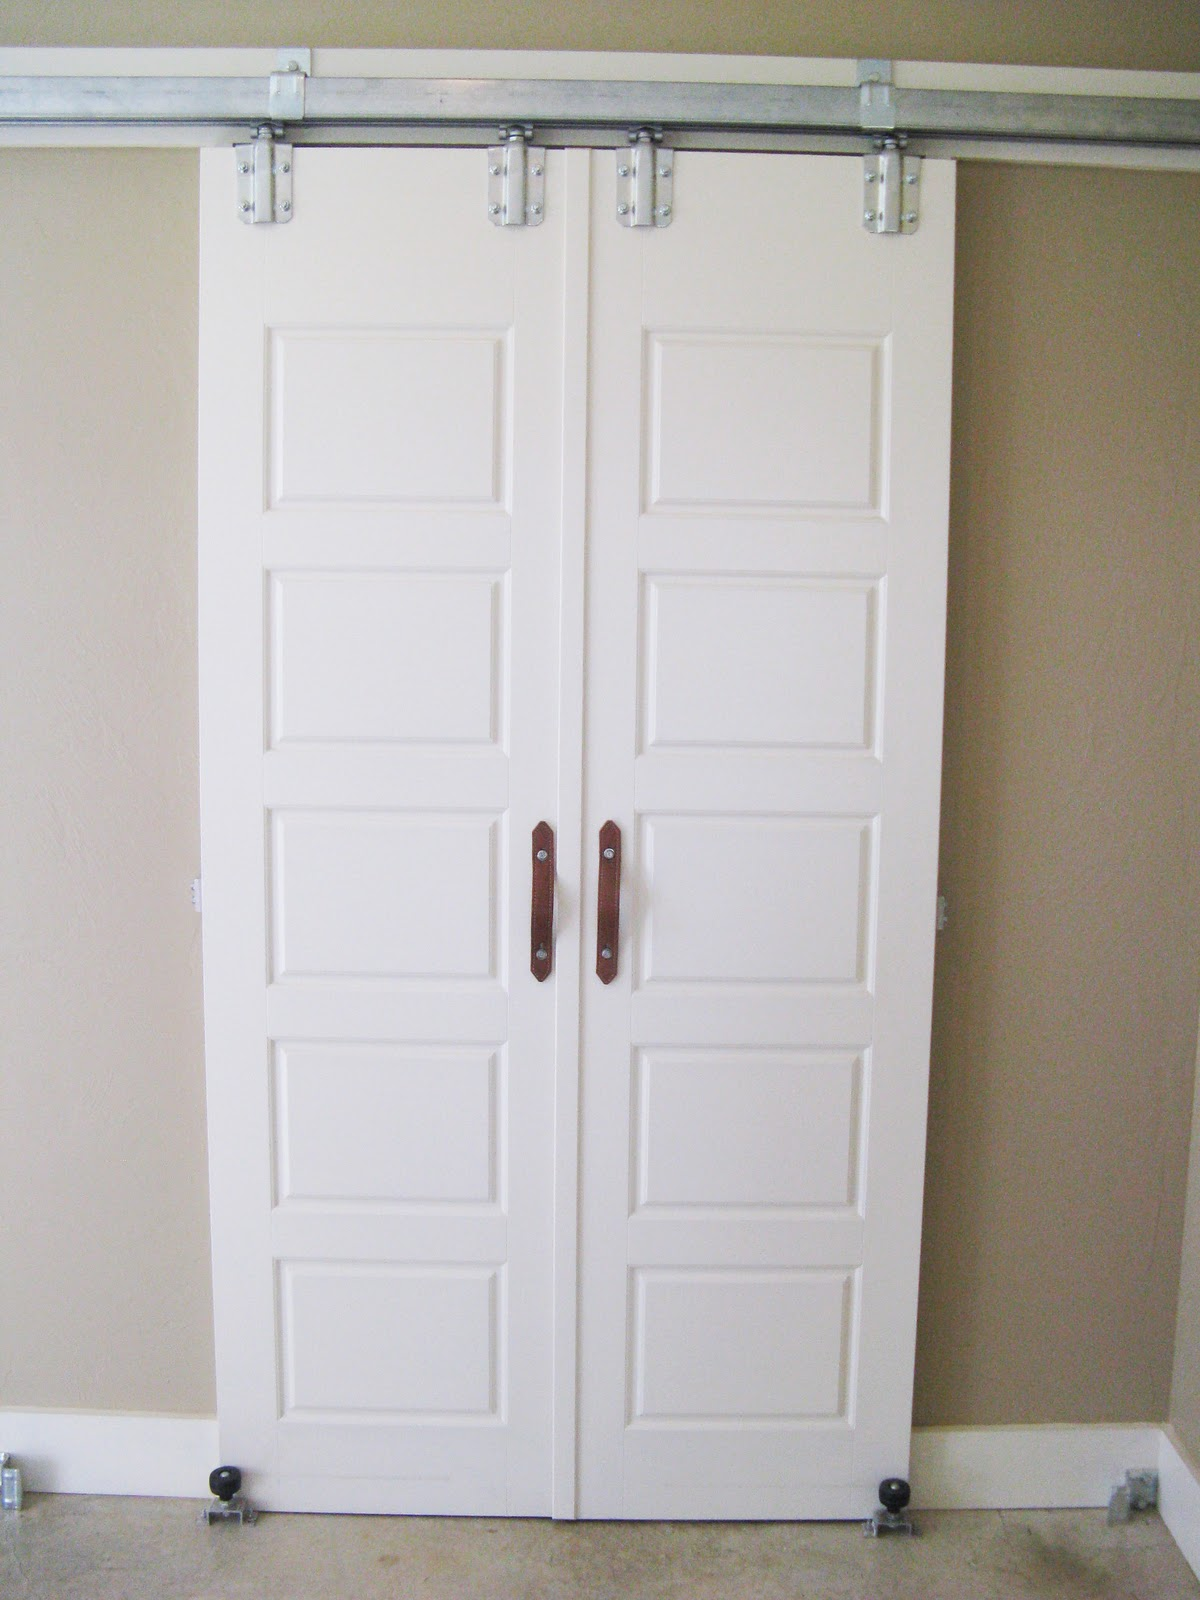 10 Barn Door Designs For Any Style Home Page 10 Of 11